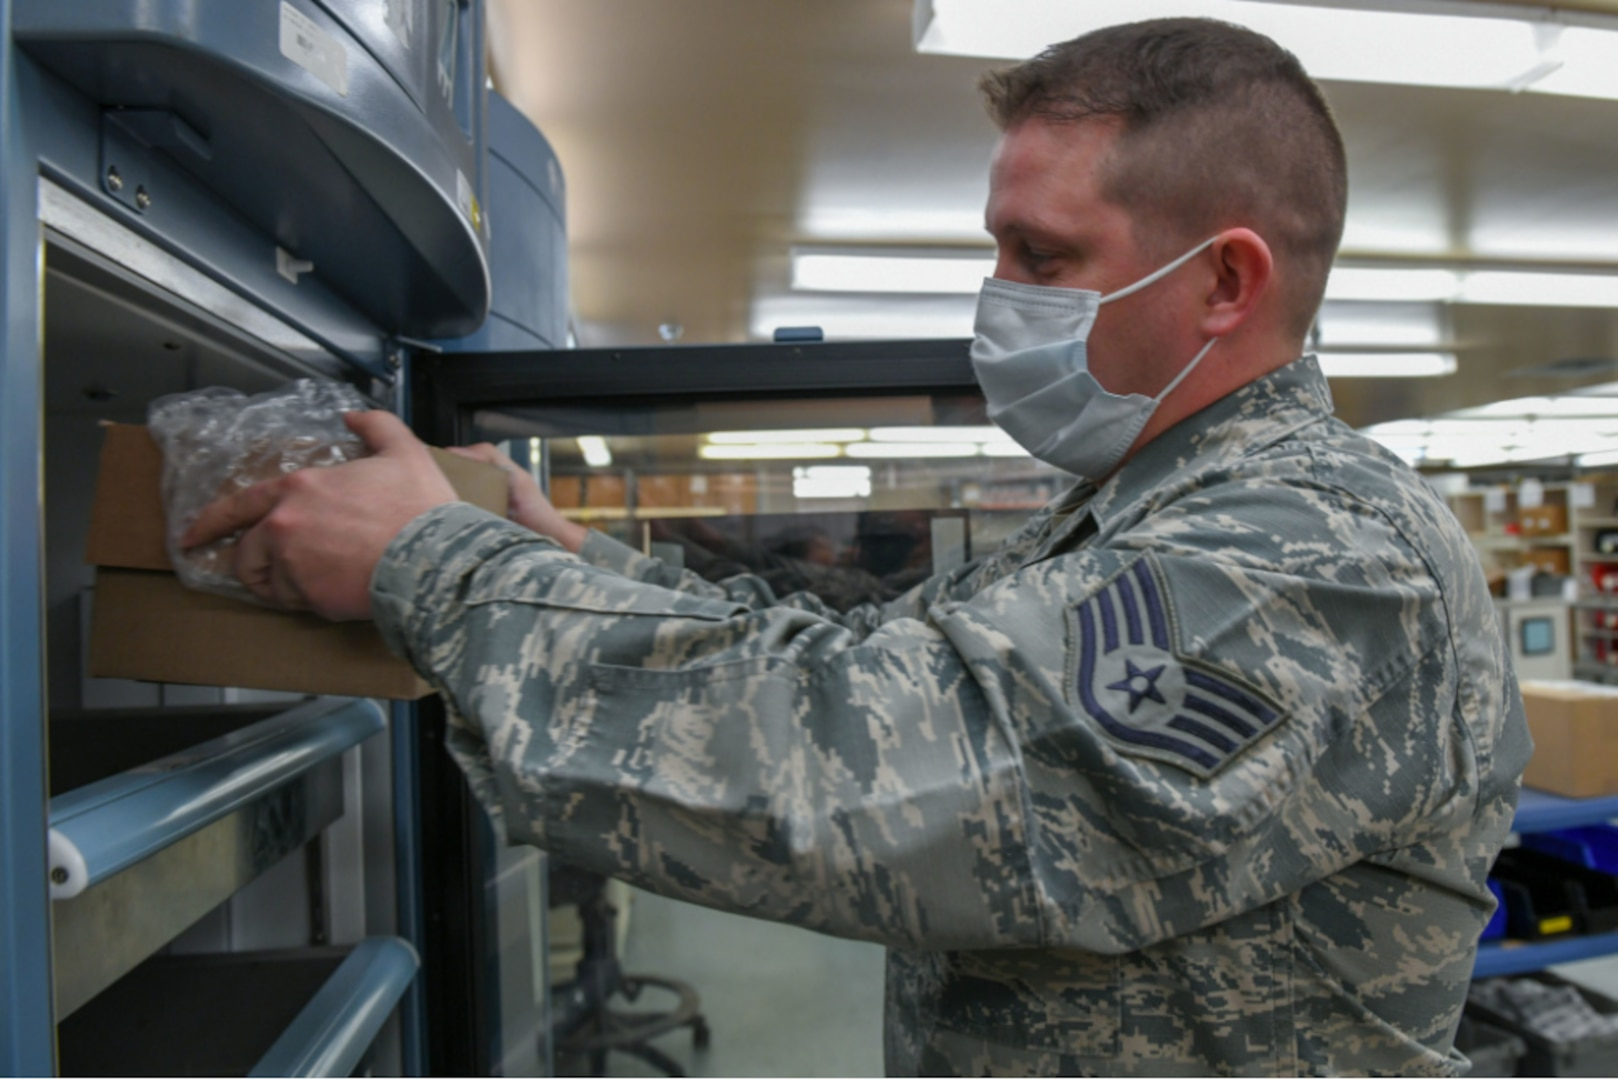 Staff Sgt. Bush Meister, 19th Medical Group NCO in charge of medical equipment, stores the first shipment of the Moderna COVID-19 Vaccine at Little Rock Air Force Base, Arkansas, Jan. 13, 2021.